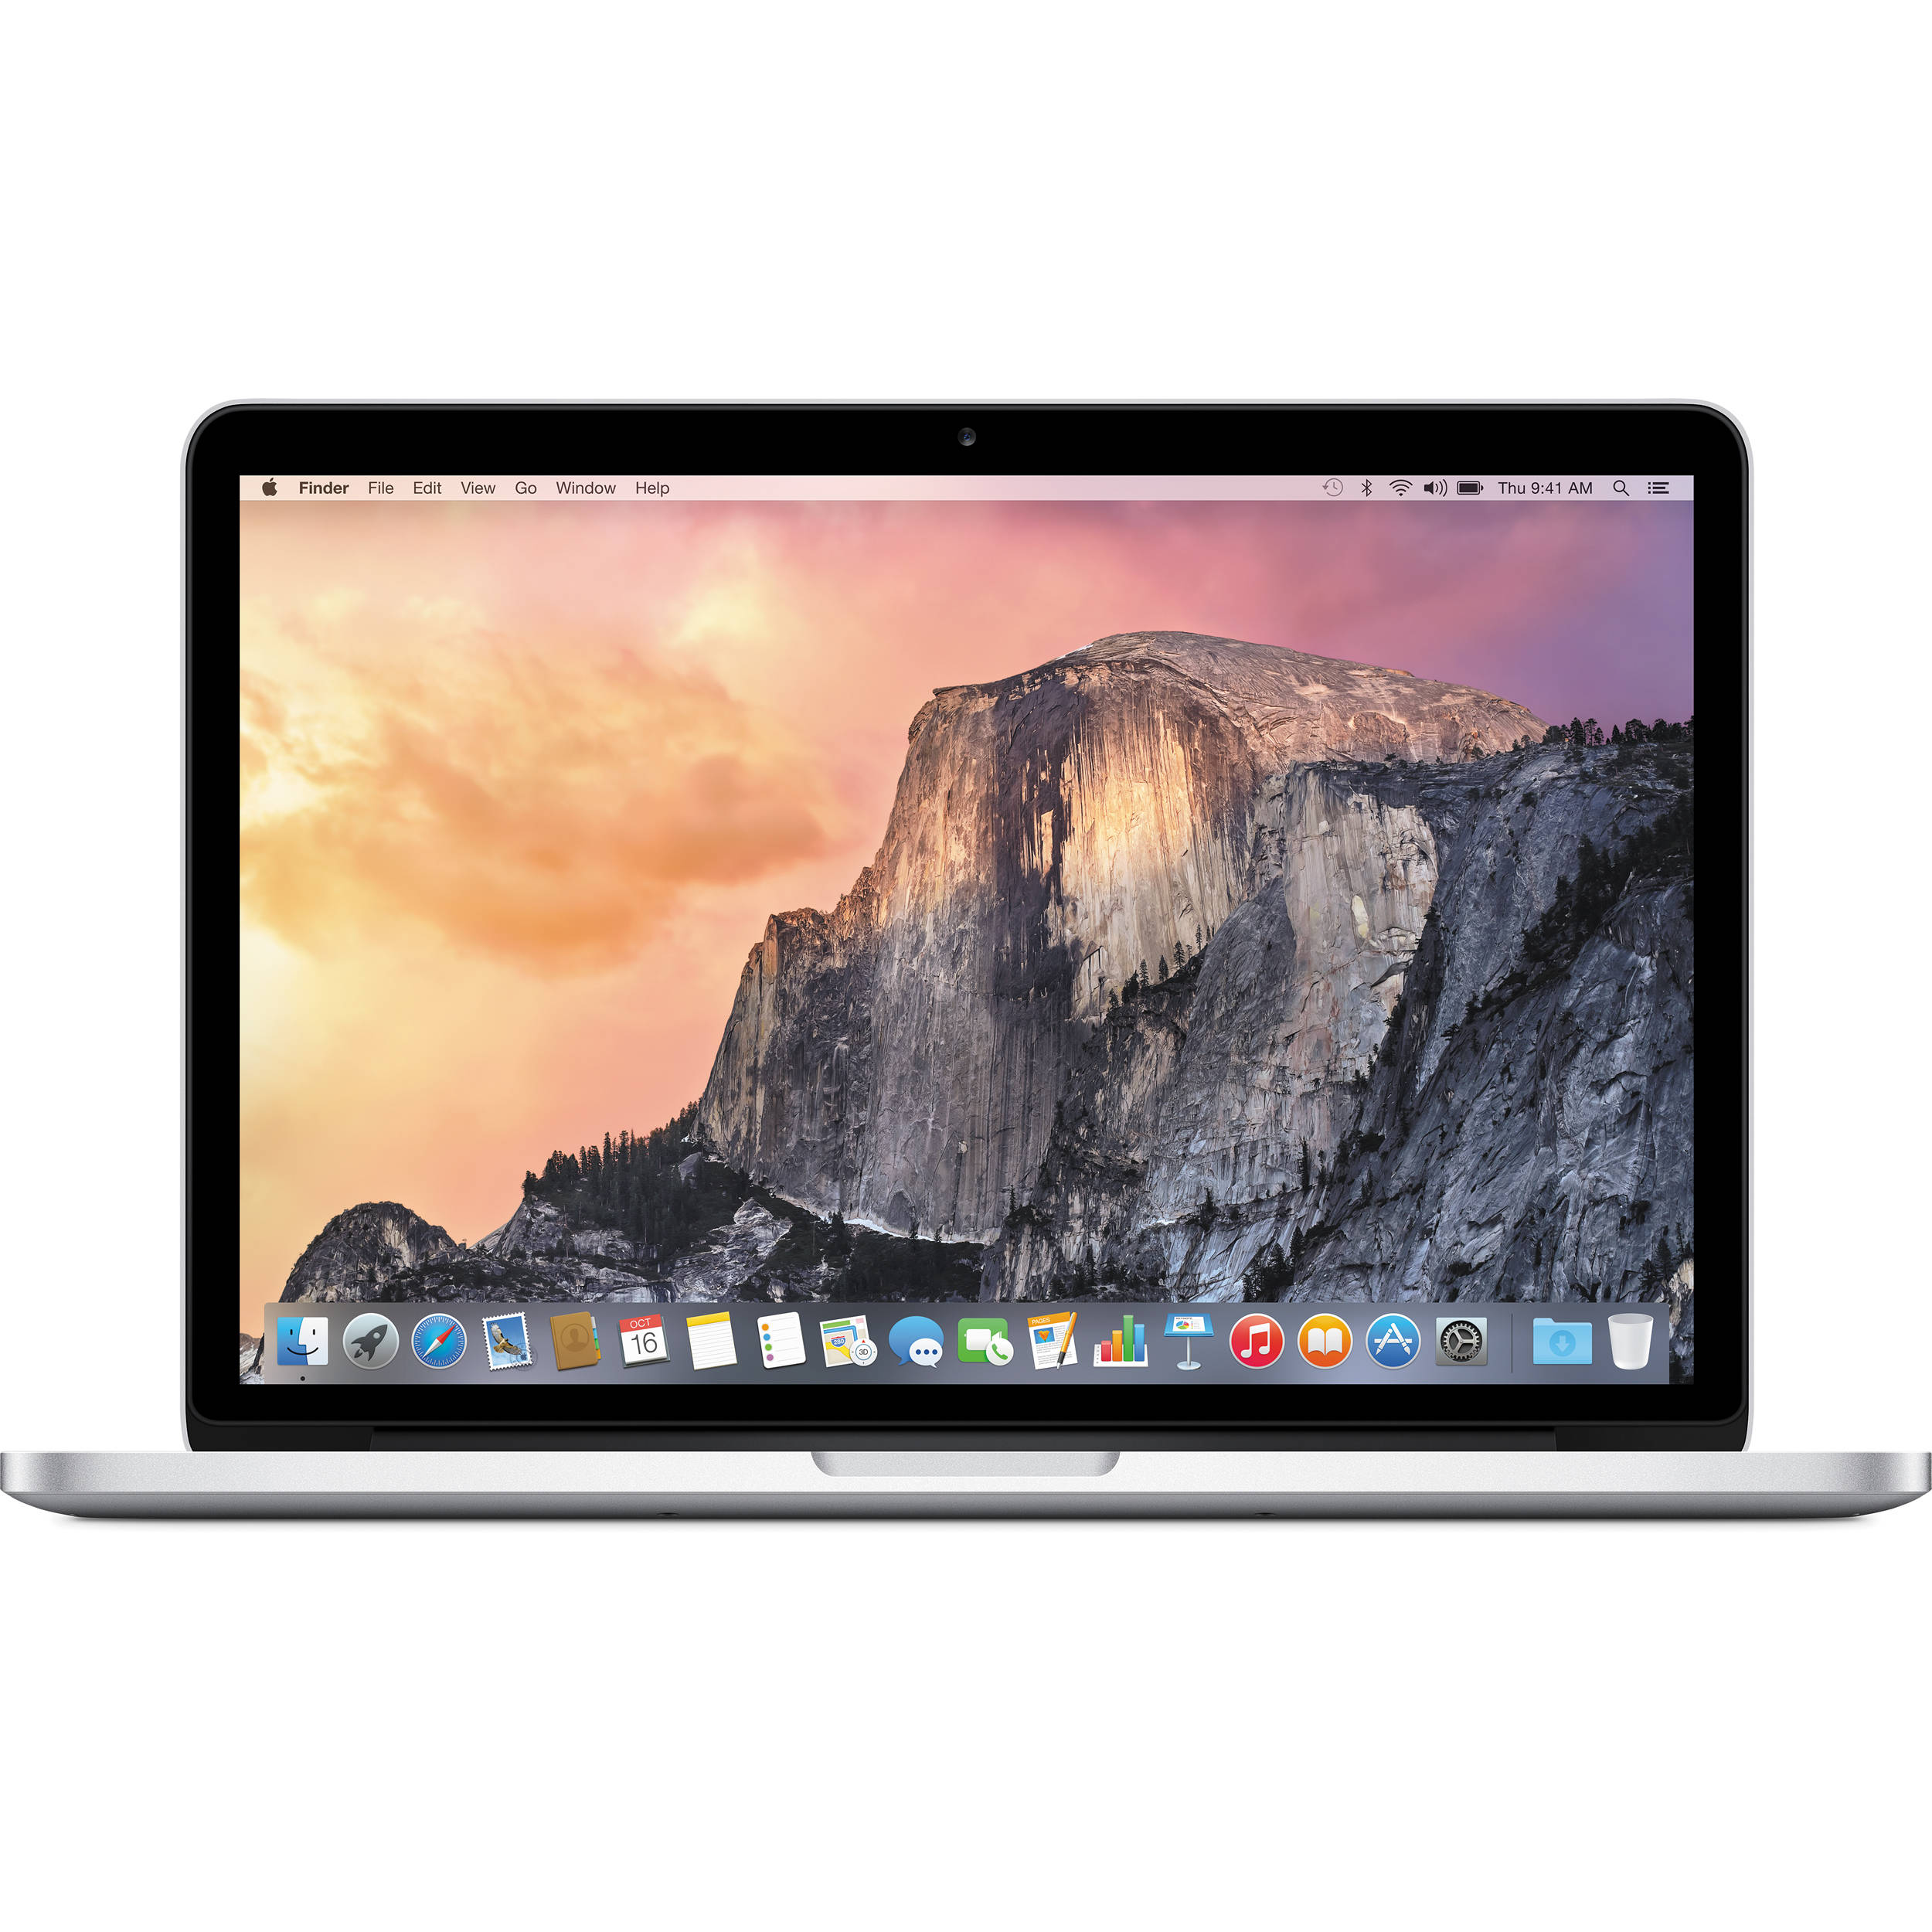 Apple MacBook Pro 13-inch: Full Review and Benchmarks MacBook Pro - Apple